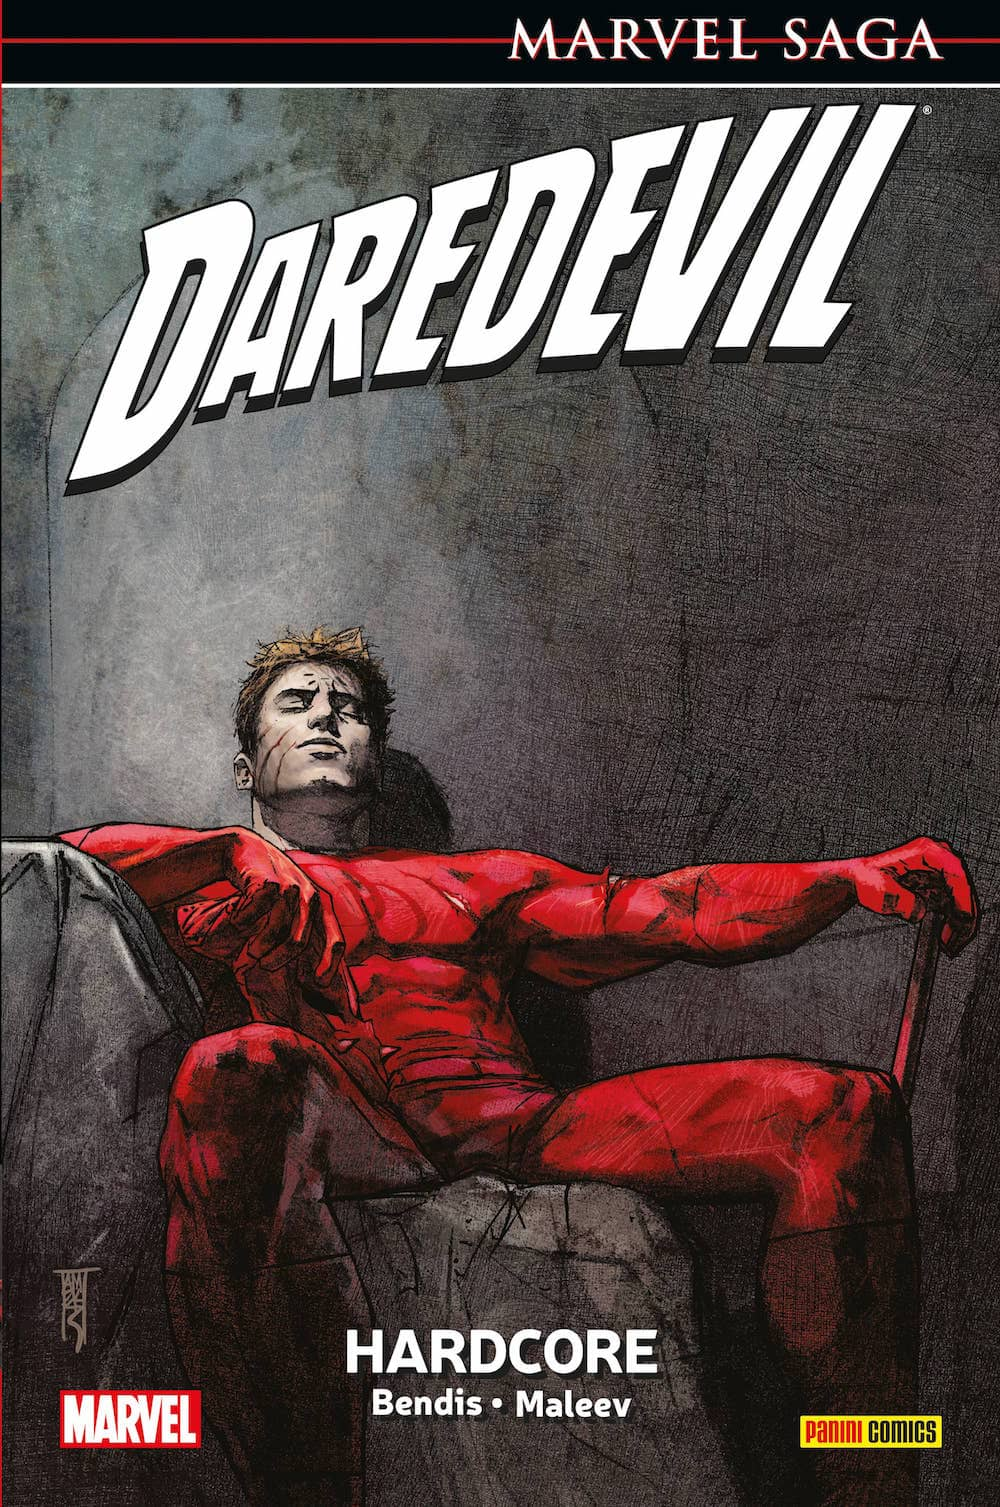 DAREDEVIL 08: HARDCORE   (MARVEL SAGA 24)